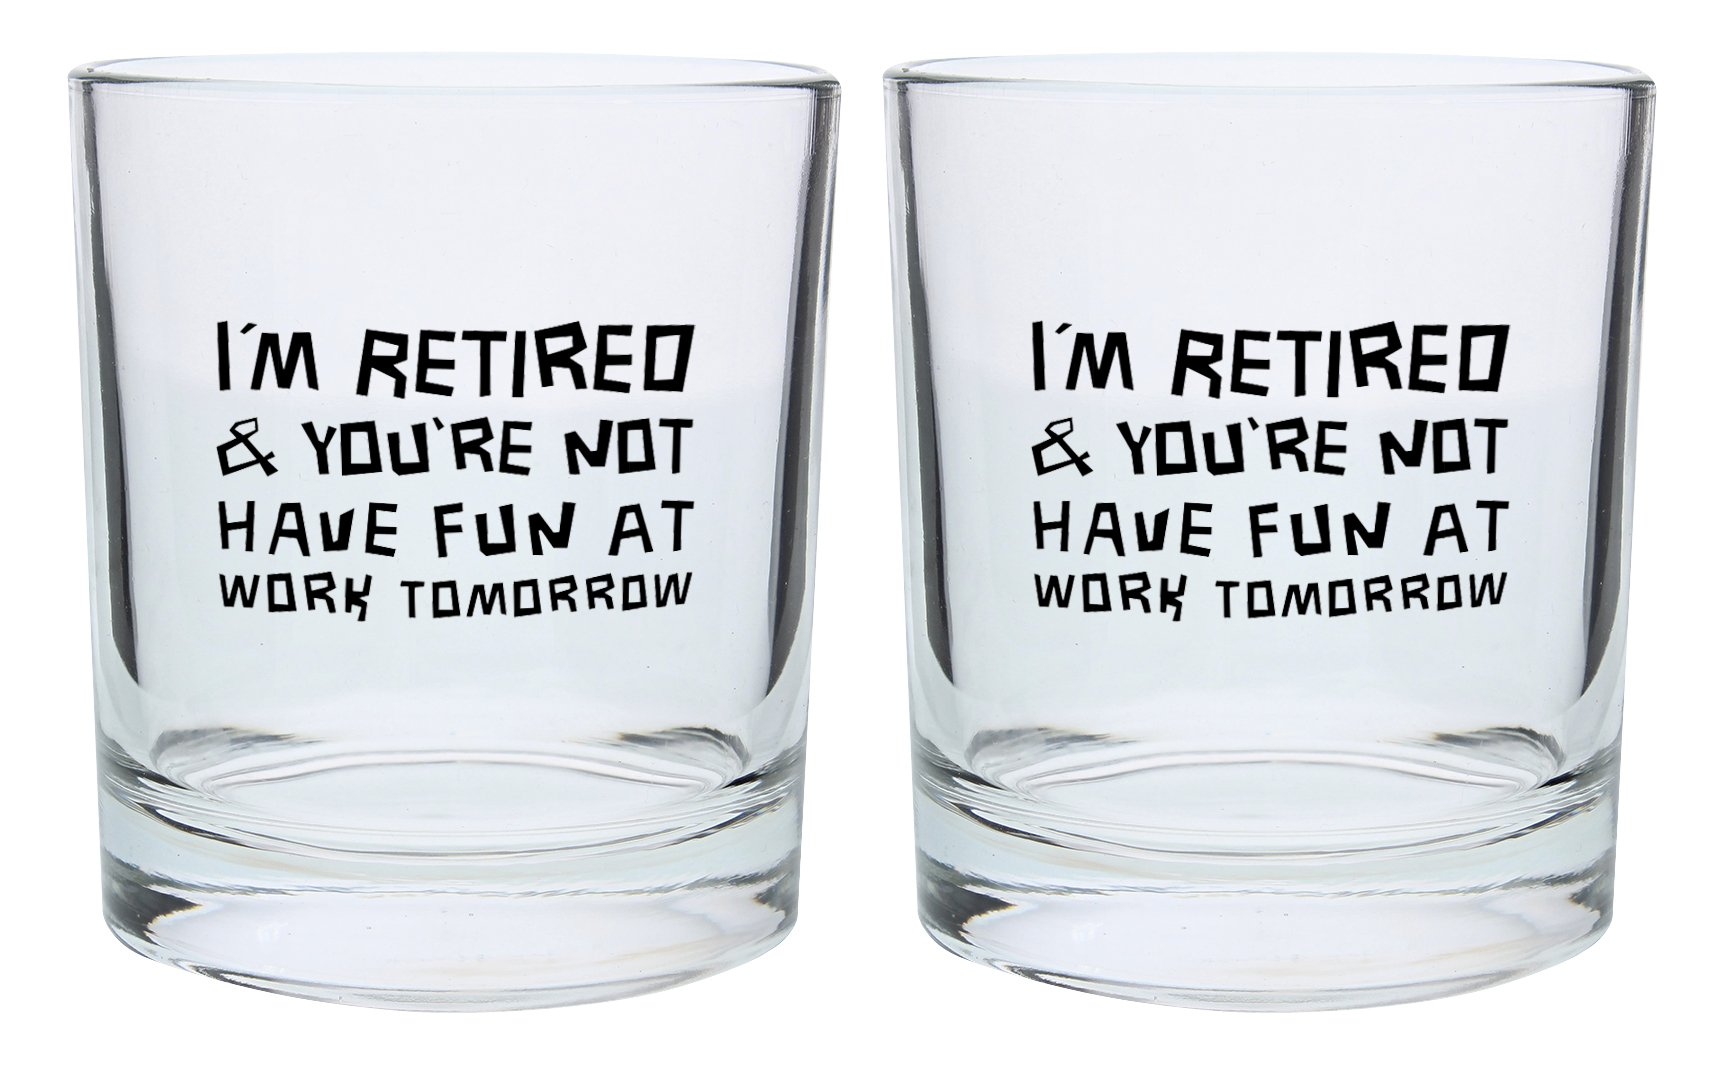 Retirement Gifts for Women or Men I'm Retired You're Not Have Fun at Work Tomorrow Funny Retirement Gift Set Gift Lowball Glasses 2-Pack Round Lowball Tumbler Set Black